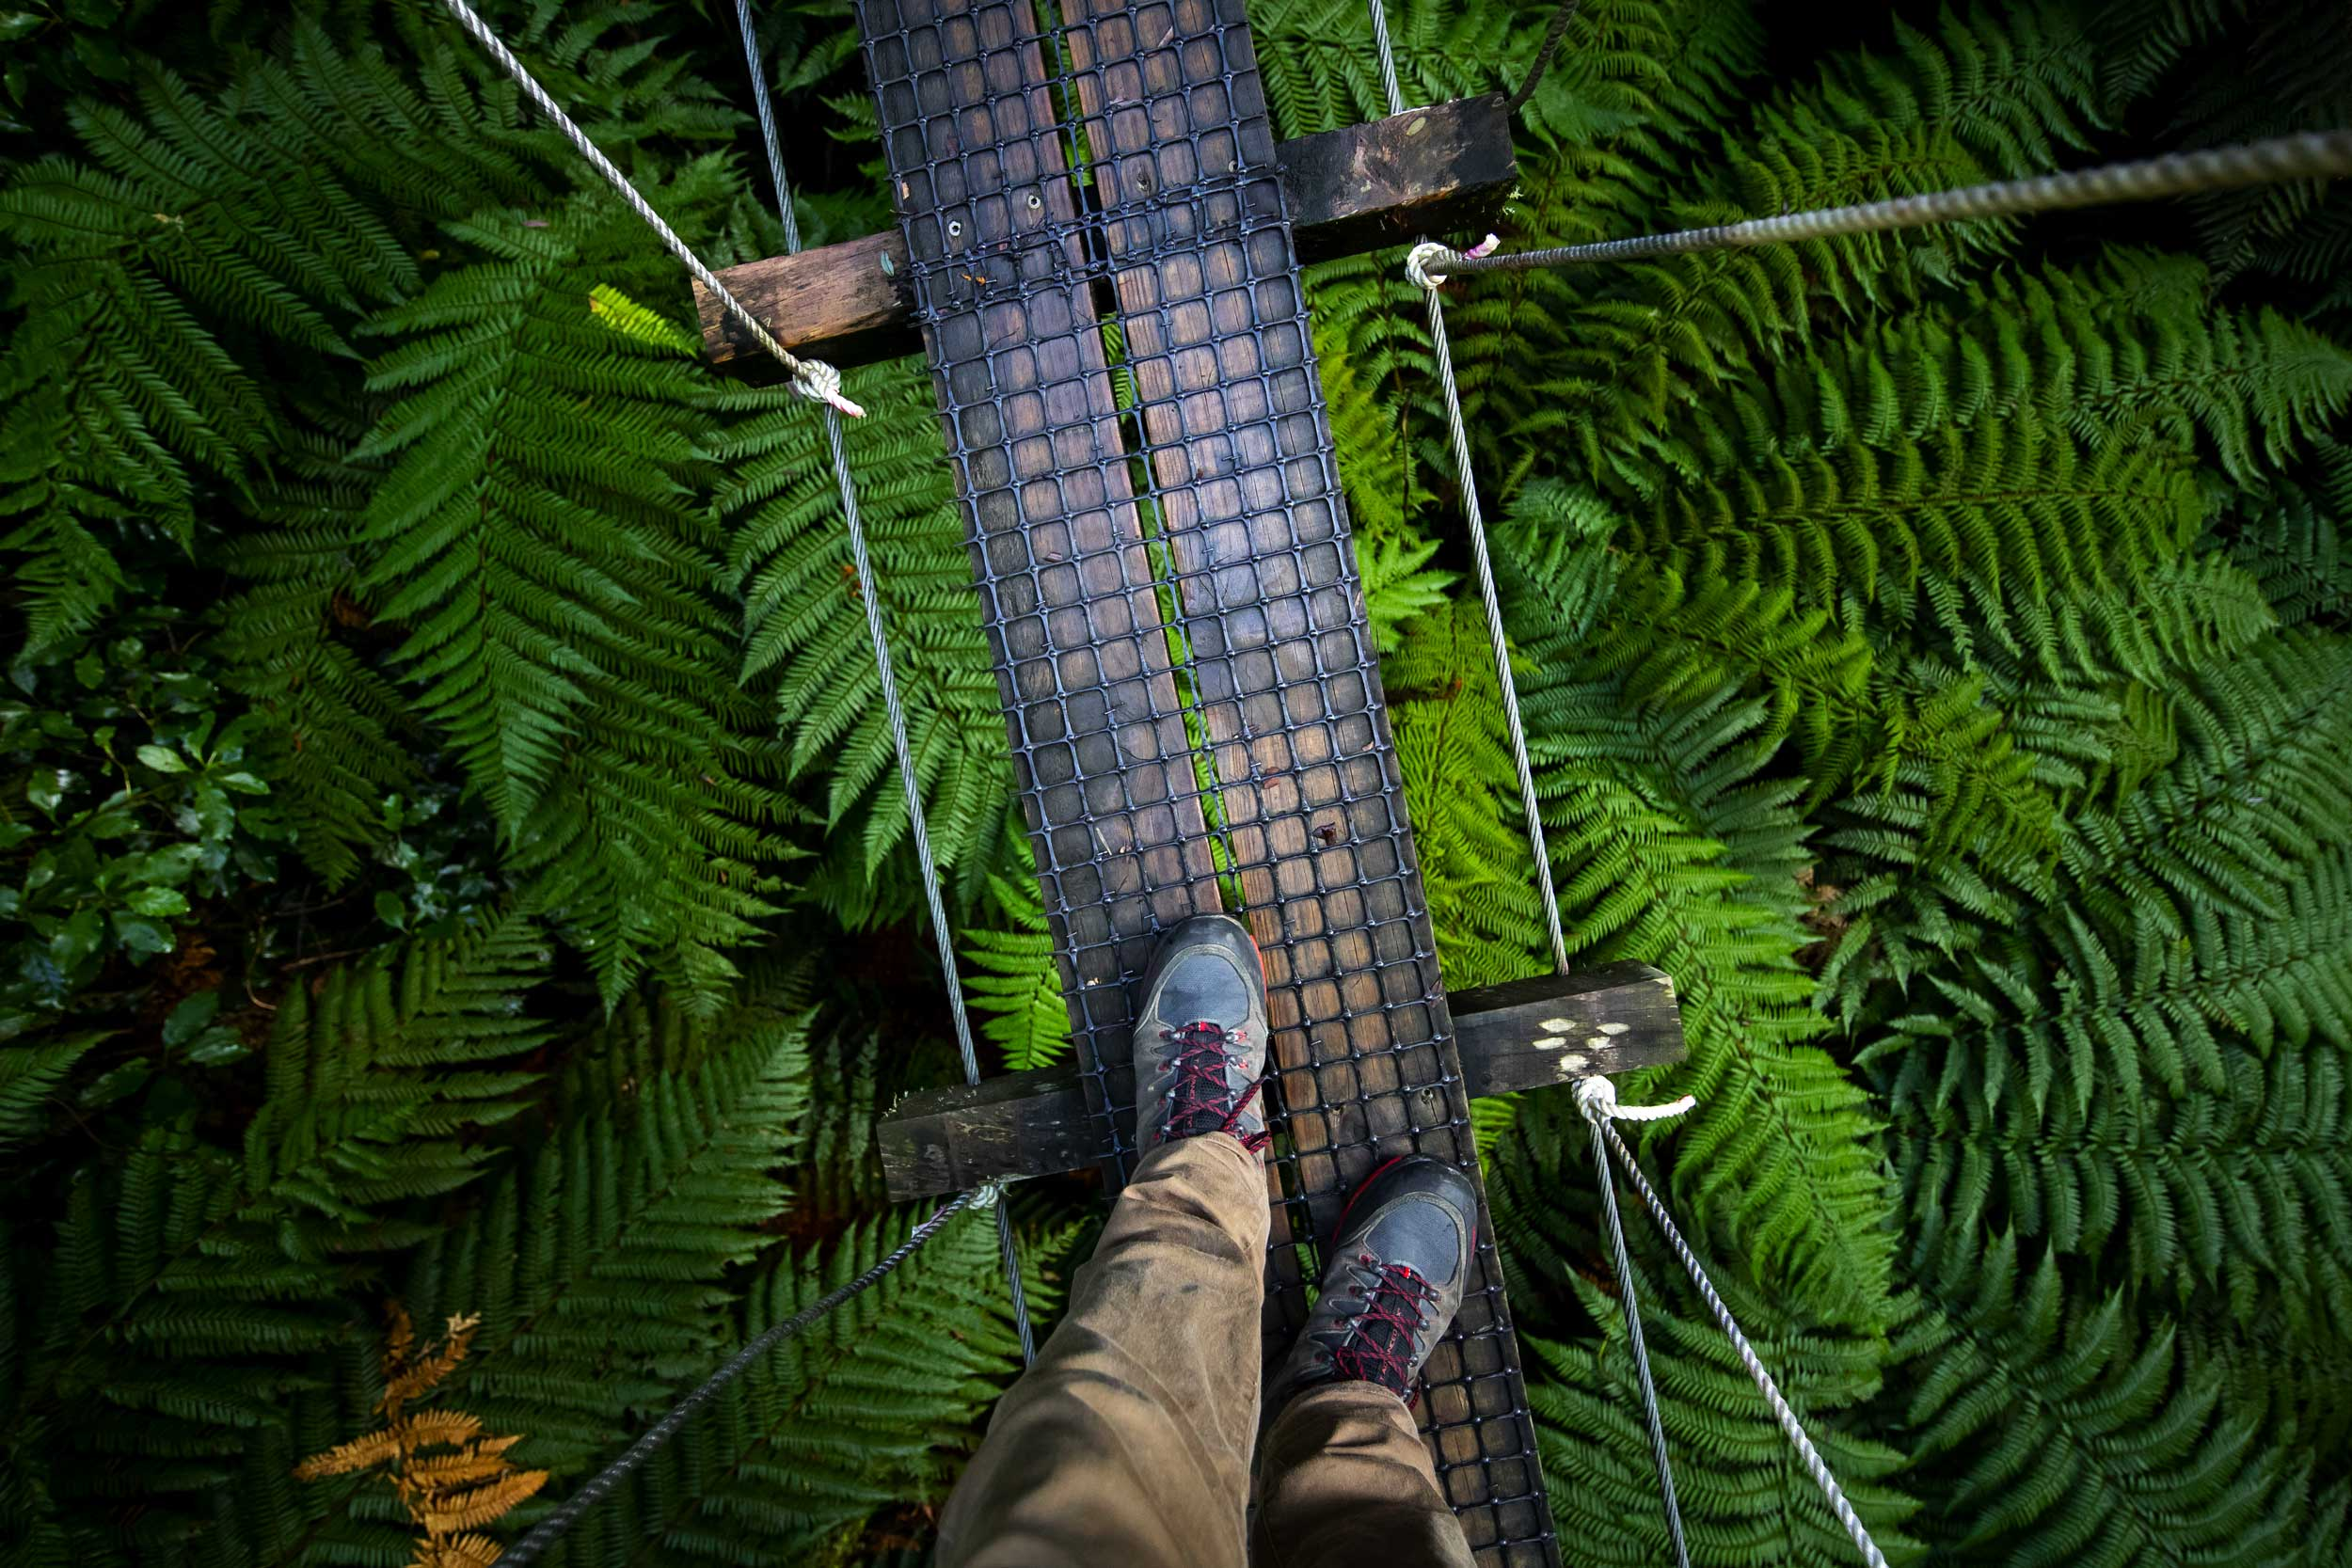 Downward shot of feet on a very narrow swing bridge, Rotorua